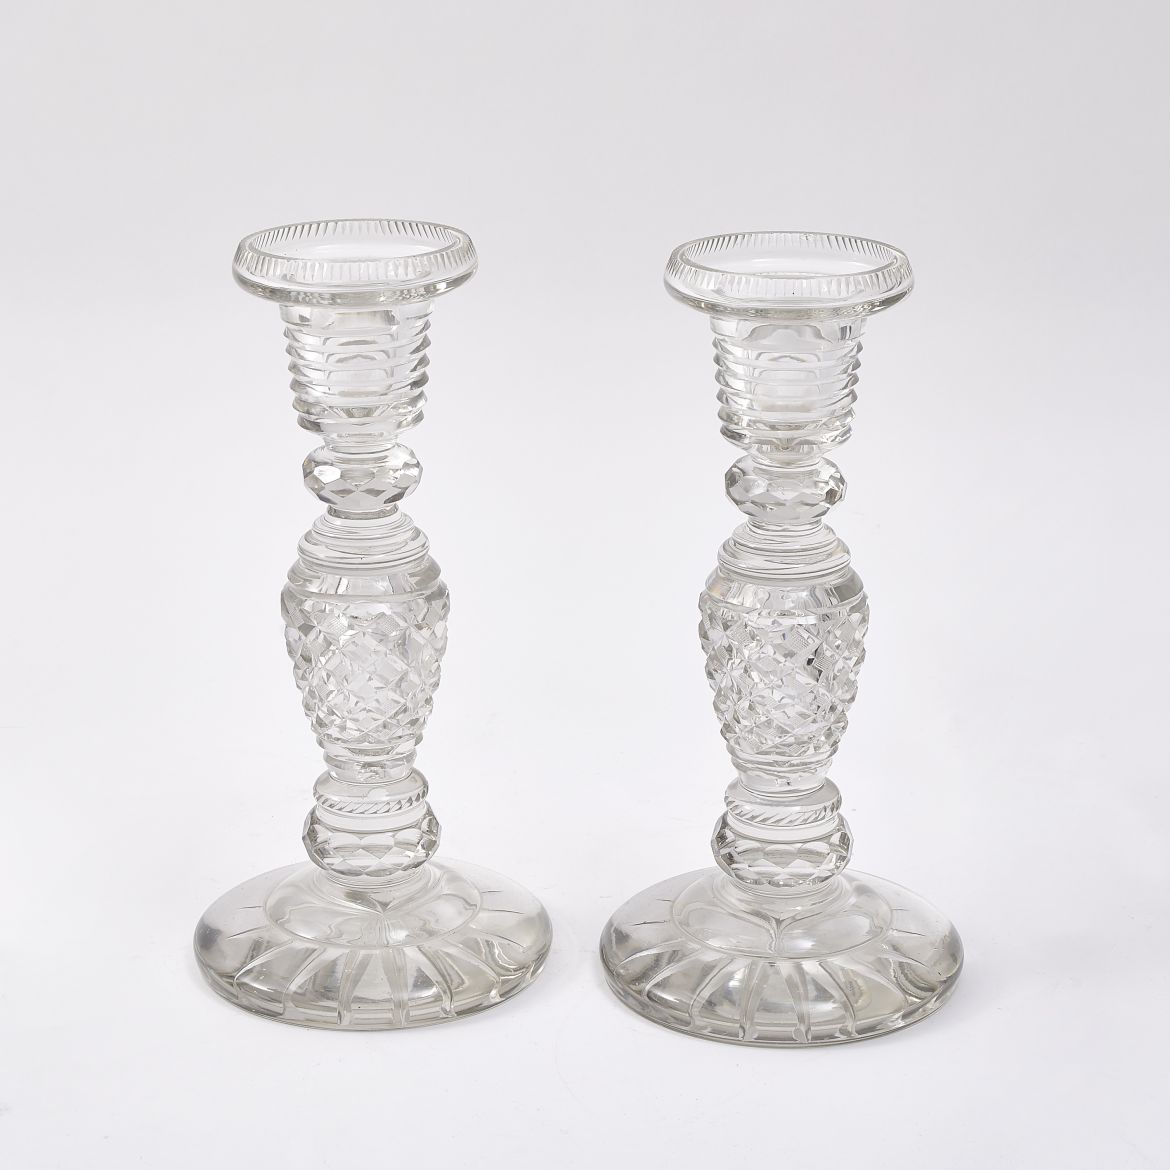 English Cut Crystal Candlesticks